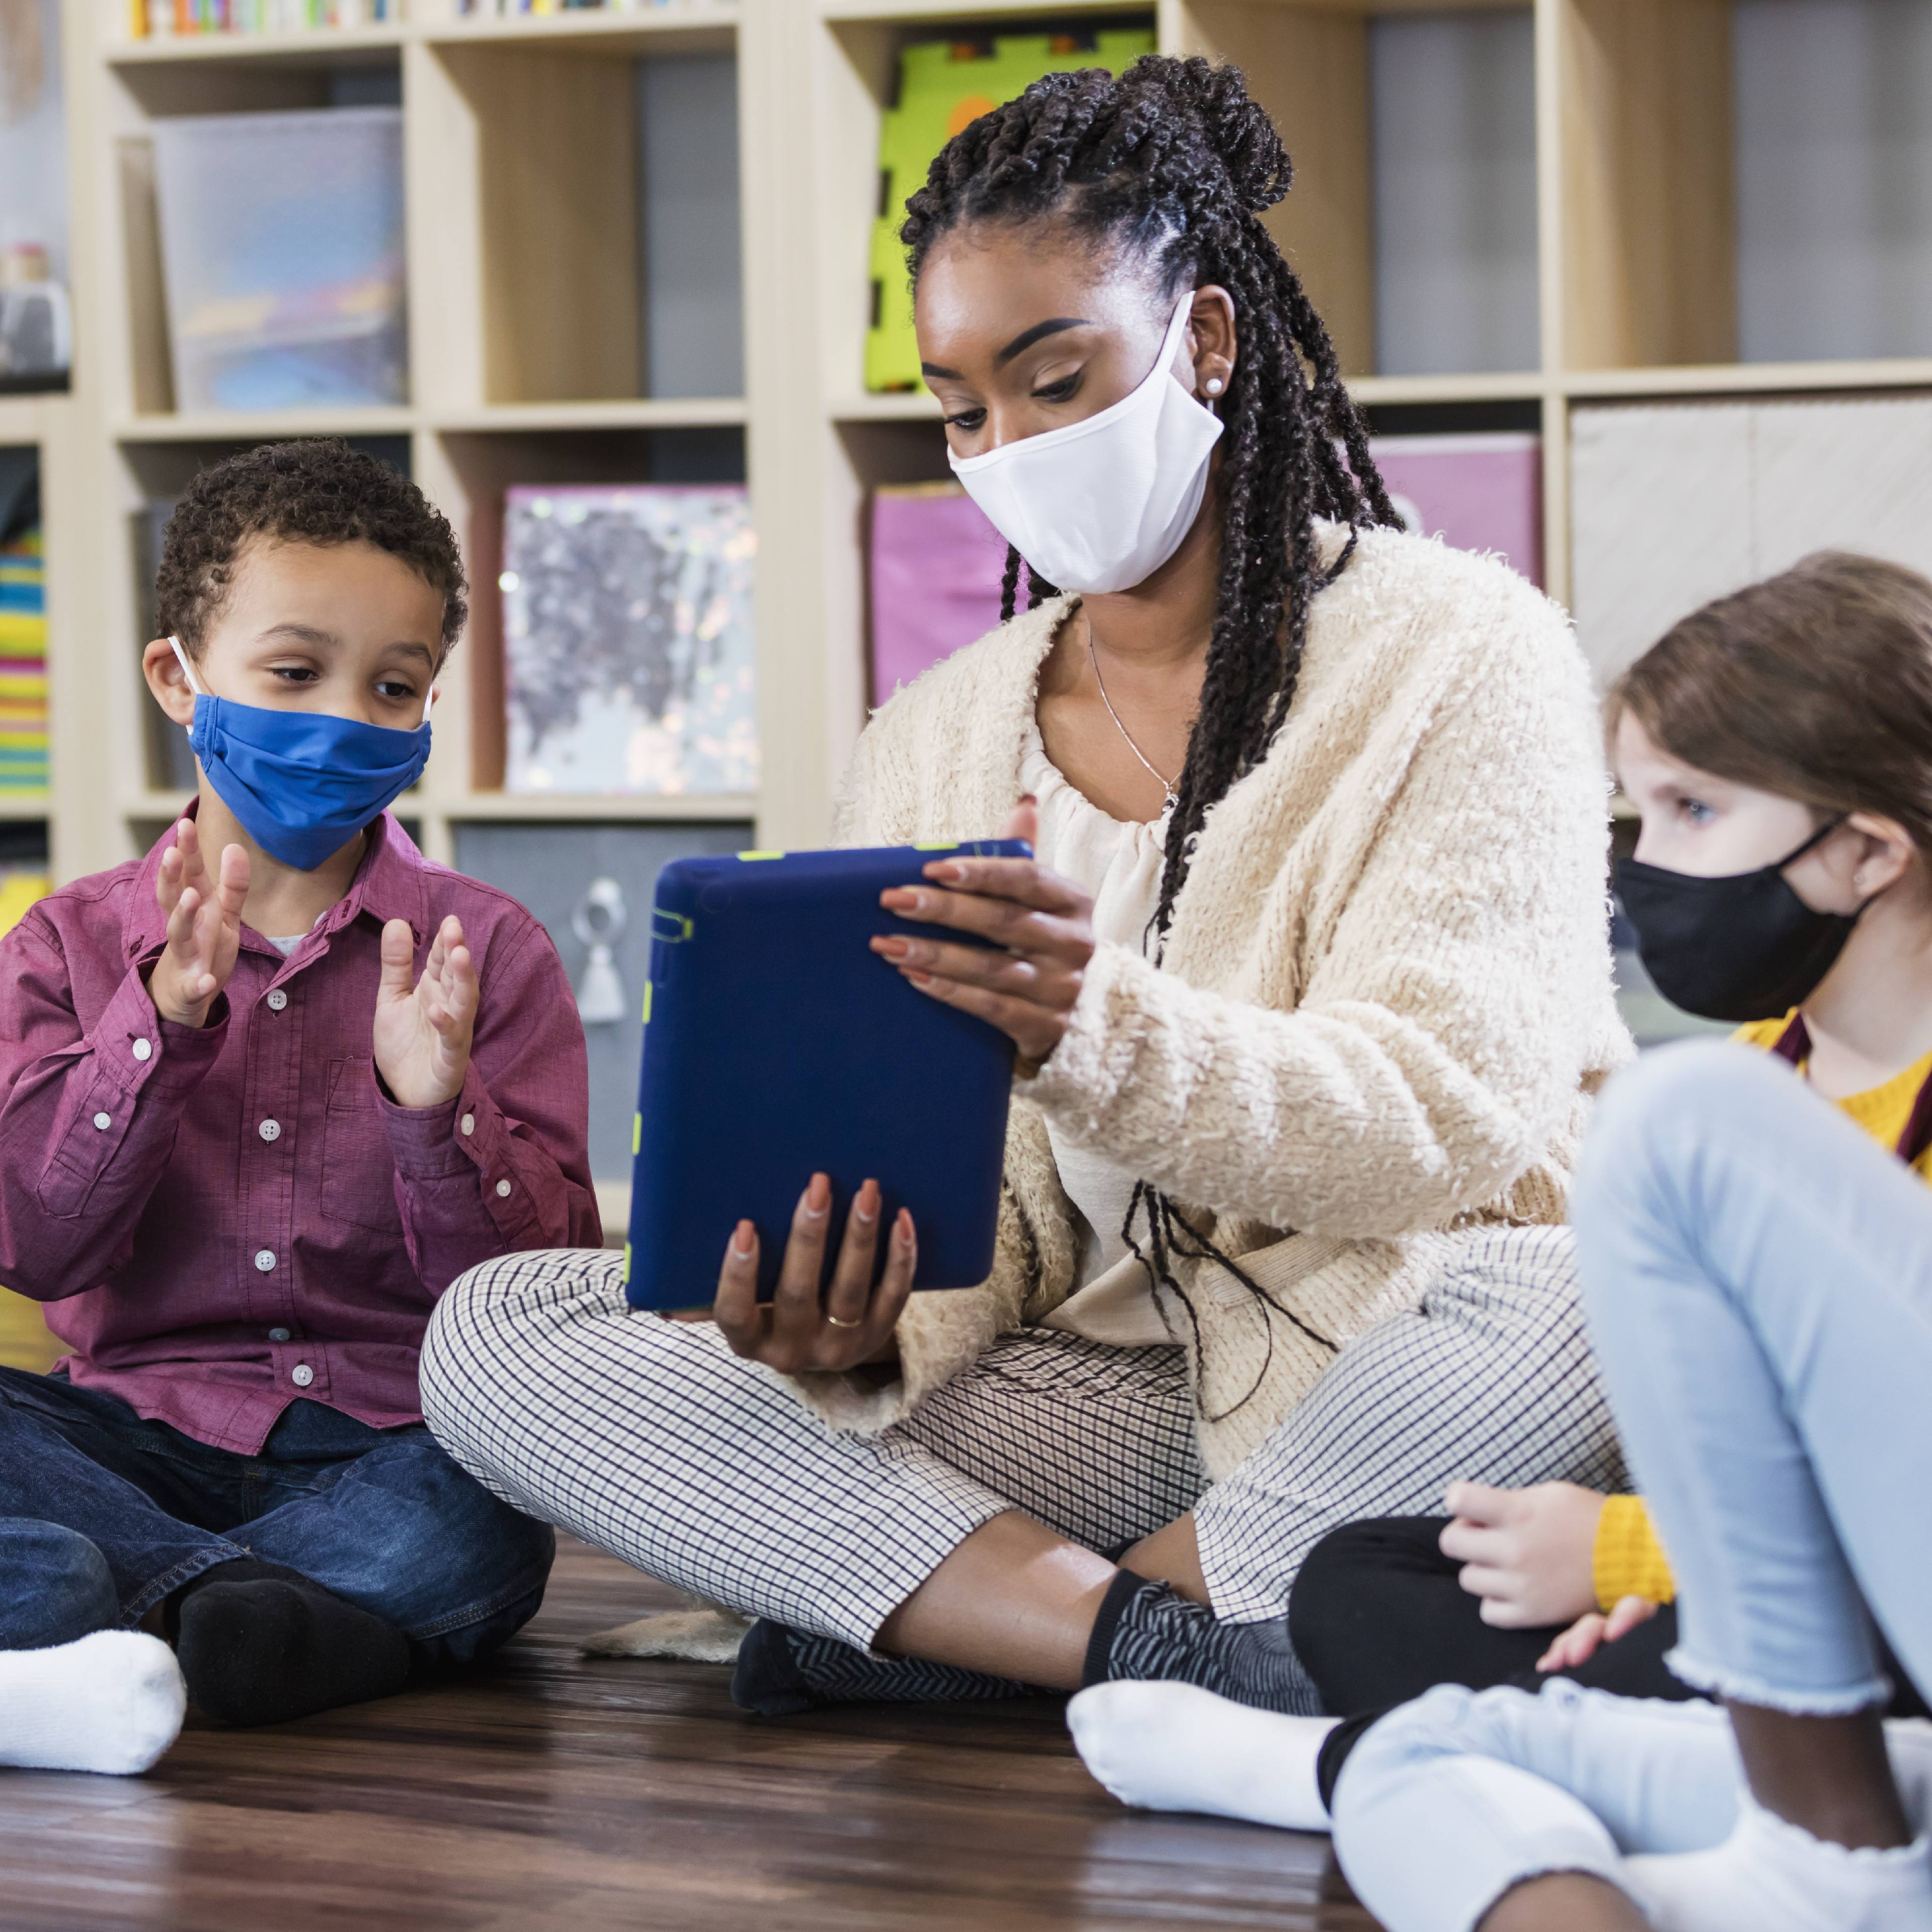 a young Black woman, teacher sitting on classroom floor reading to school children, all wearing masks